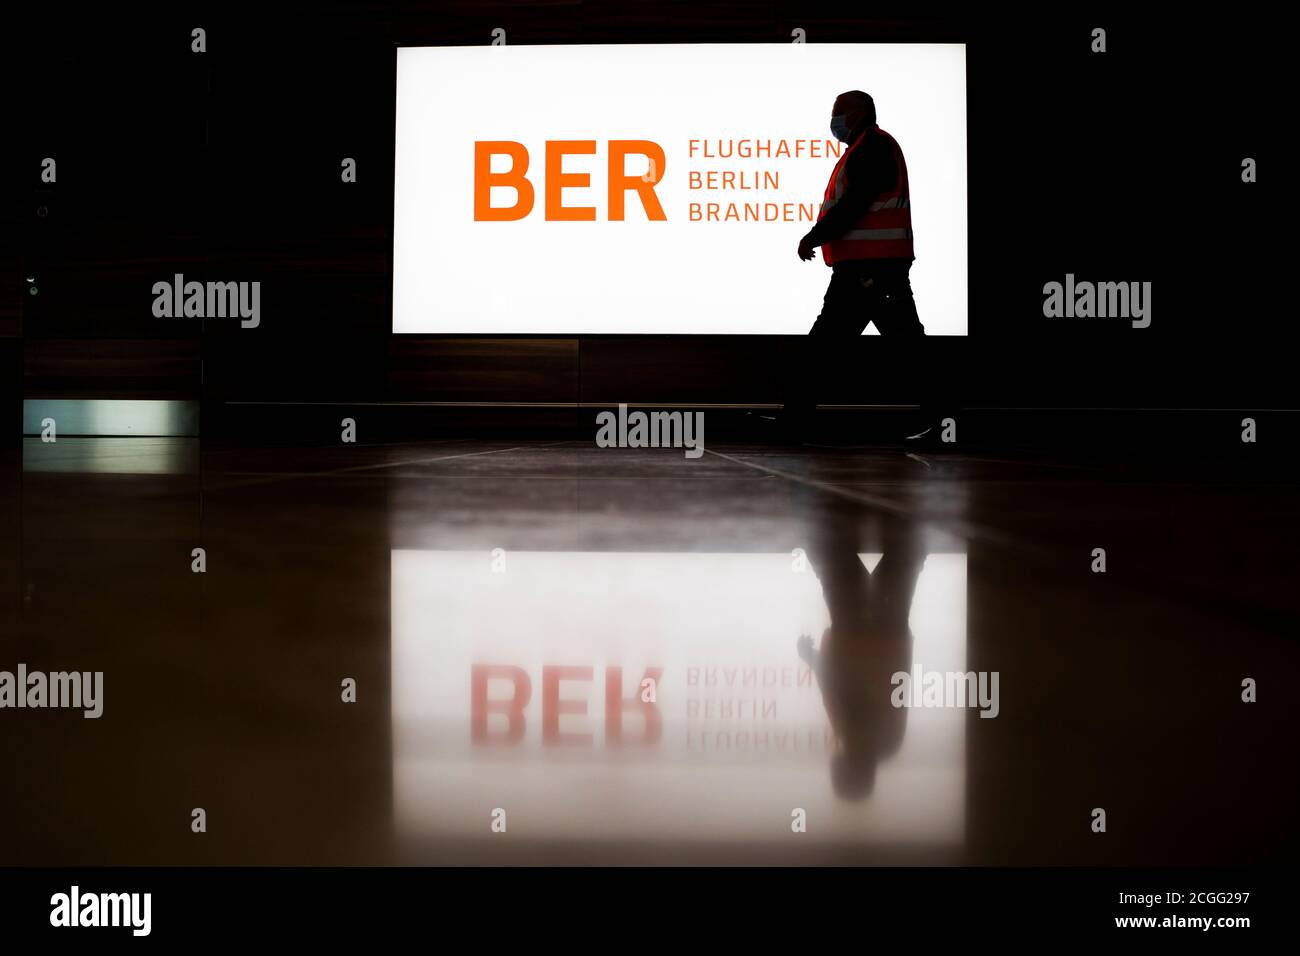 """08 September 2020, Brandenburg, Schönefeld: A man walks """"Willy Brandt"""" (BER) in front of an illuminated banner with the BER logo during a tour of the capital airport Berlin Brandenburg. The Capital Airport is scheduled to open on 31 October 2020. Photo: Christoph Soeder/dpa Stock Photo"""